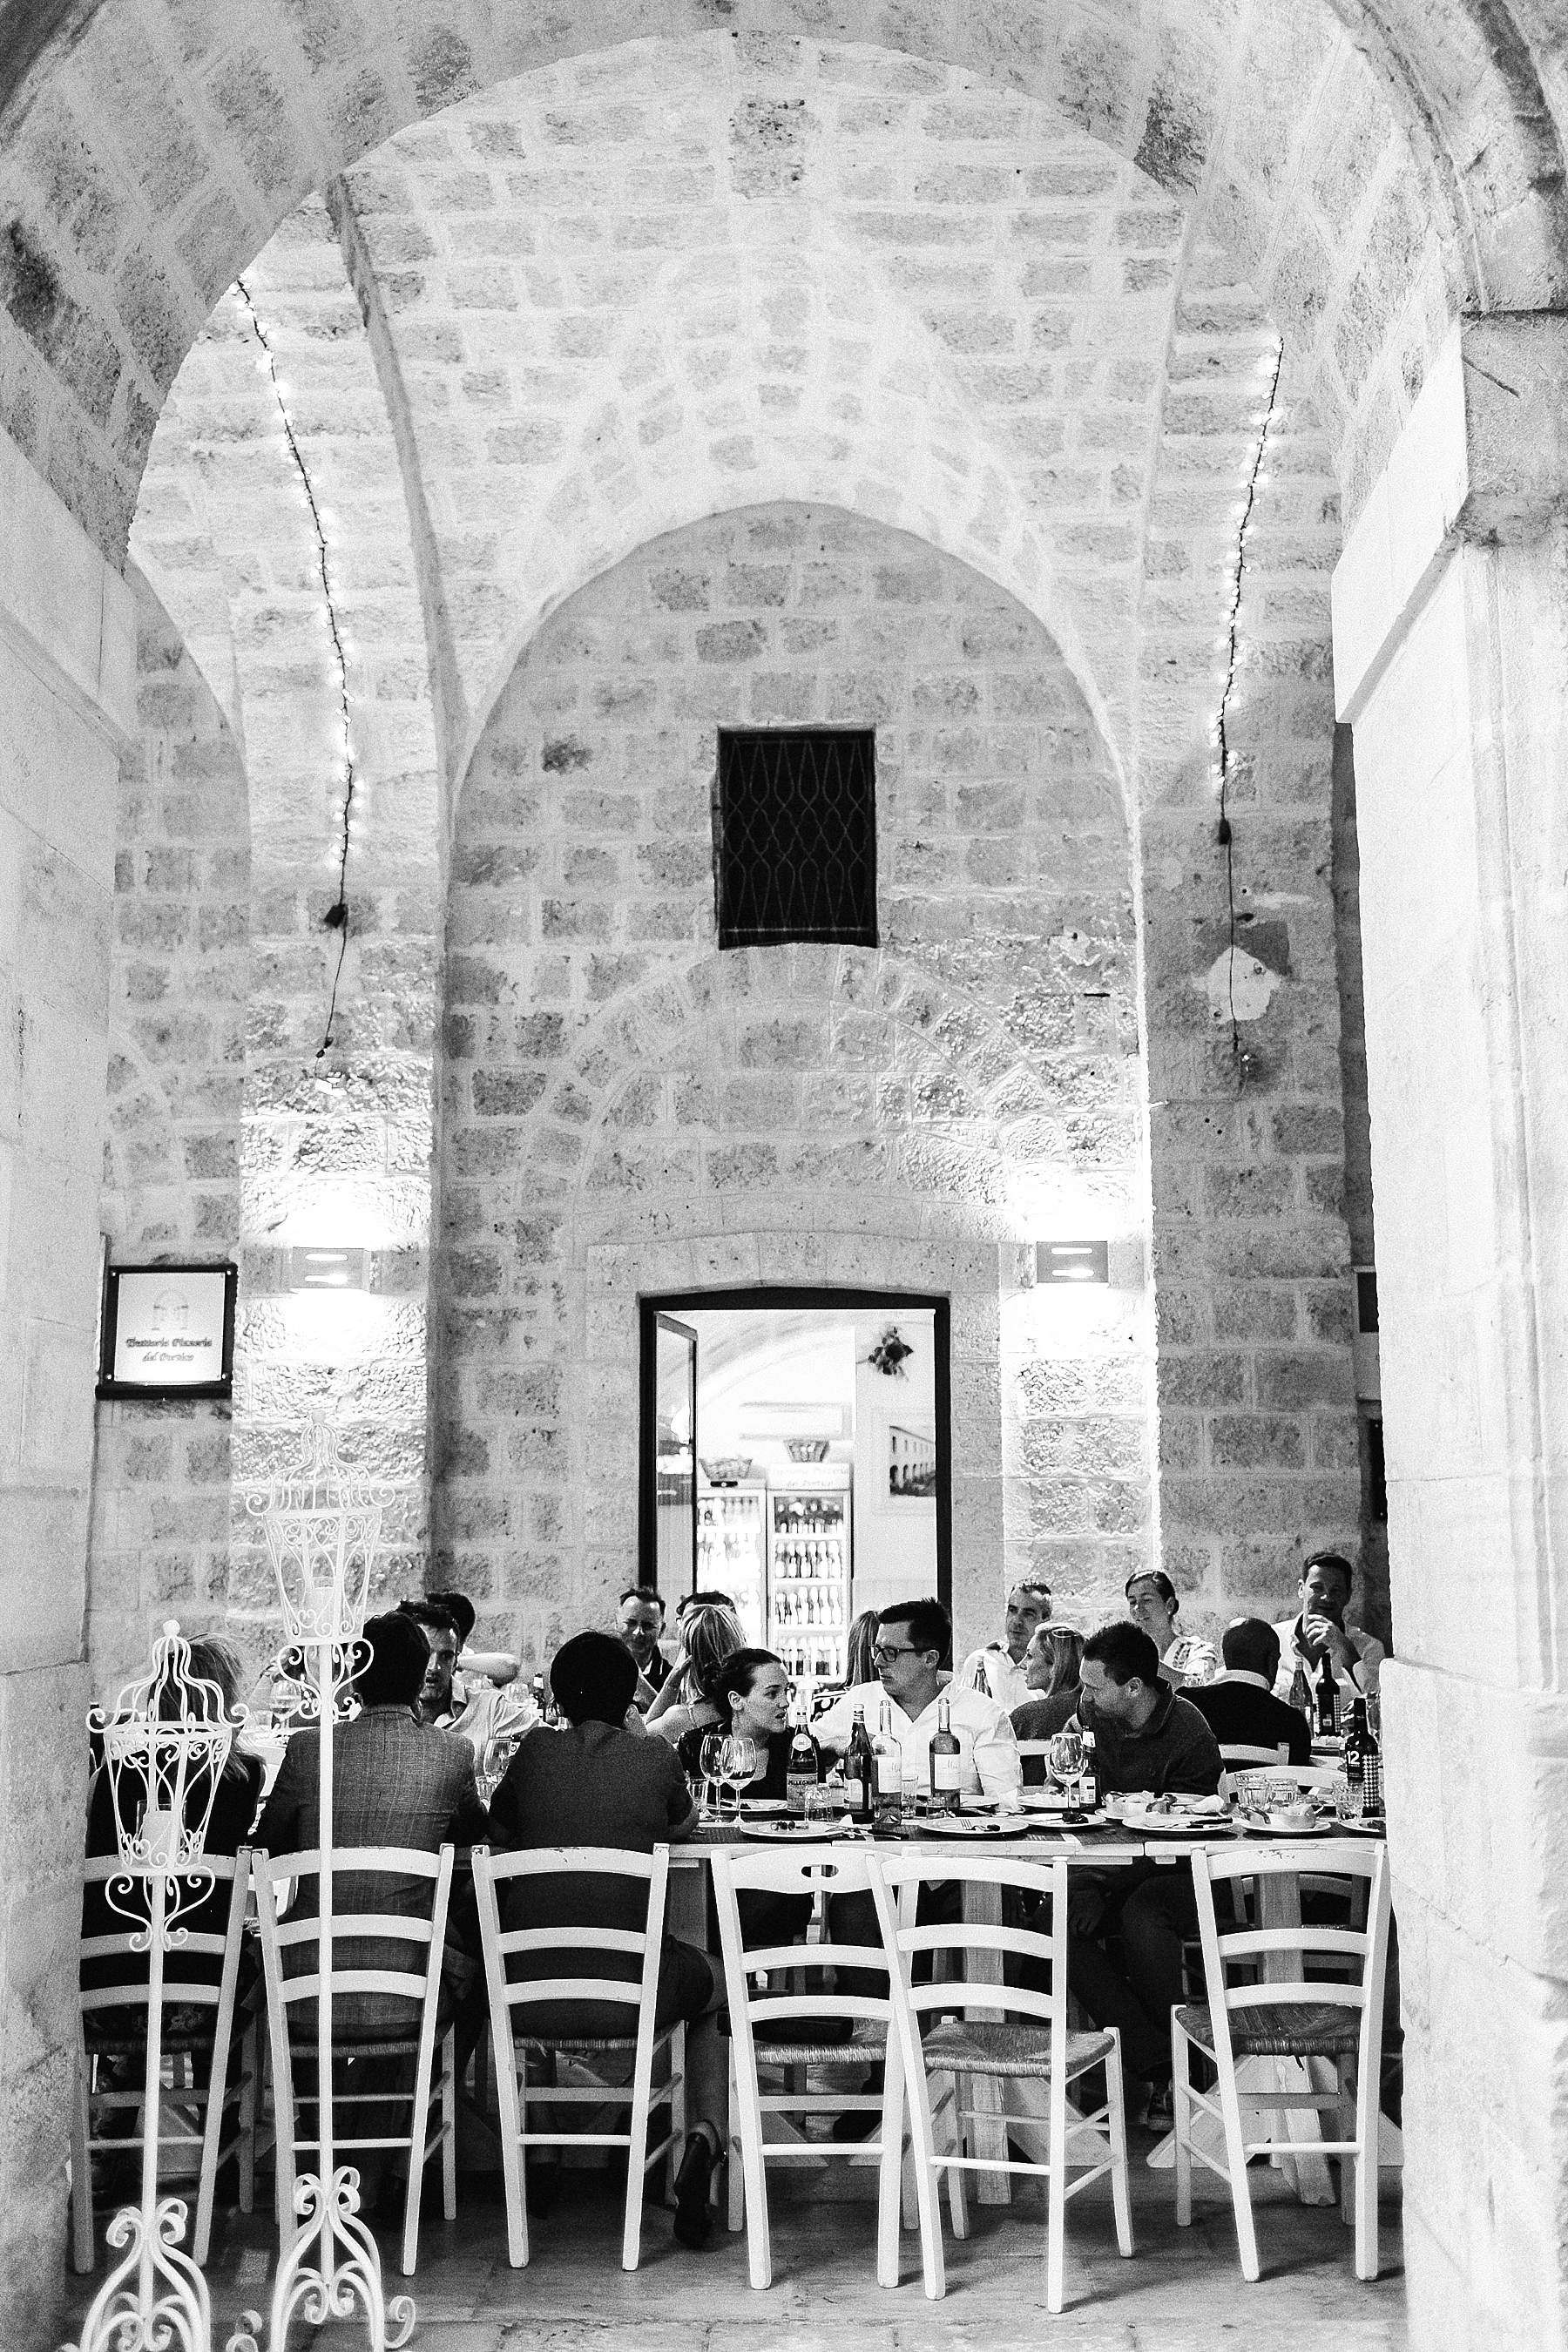 Elisabetta White, International wedding planner, Intimately inspired events, Wedding in Italy, Puglia wedding, International wedding, Wedding for travellers, Destination wedding planner, Beach wedding, Luxury wedding, Beach wedding, Boho wedding, Bohemian wedding, Beach Club wedding, Puglia welcome dinner, Intimate wedding, Small wedding, Intimate wedding planner, Intimate wedding in Italy, Luxury wedding and elopement planning, Luxury wedding, Luxury destination wedding, Luxury destination wedding planner, Luxury wedding planner, Destination wedding, Plan a destination wedding, Destination wedding in Italy, Italy wedding, Italian wedding, Italian wedding planner, Luxury Italy wedding, Gypsy soul wedding, Wedding in Italy, Wedding abroad